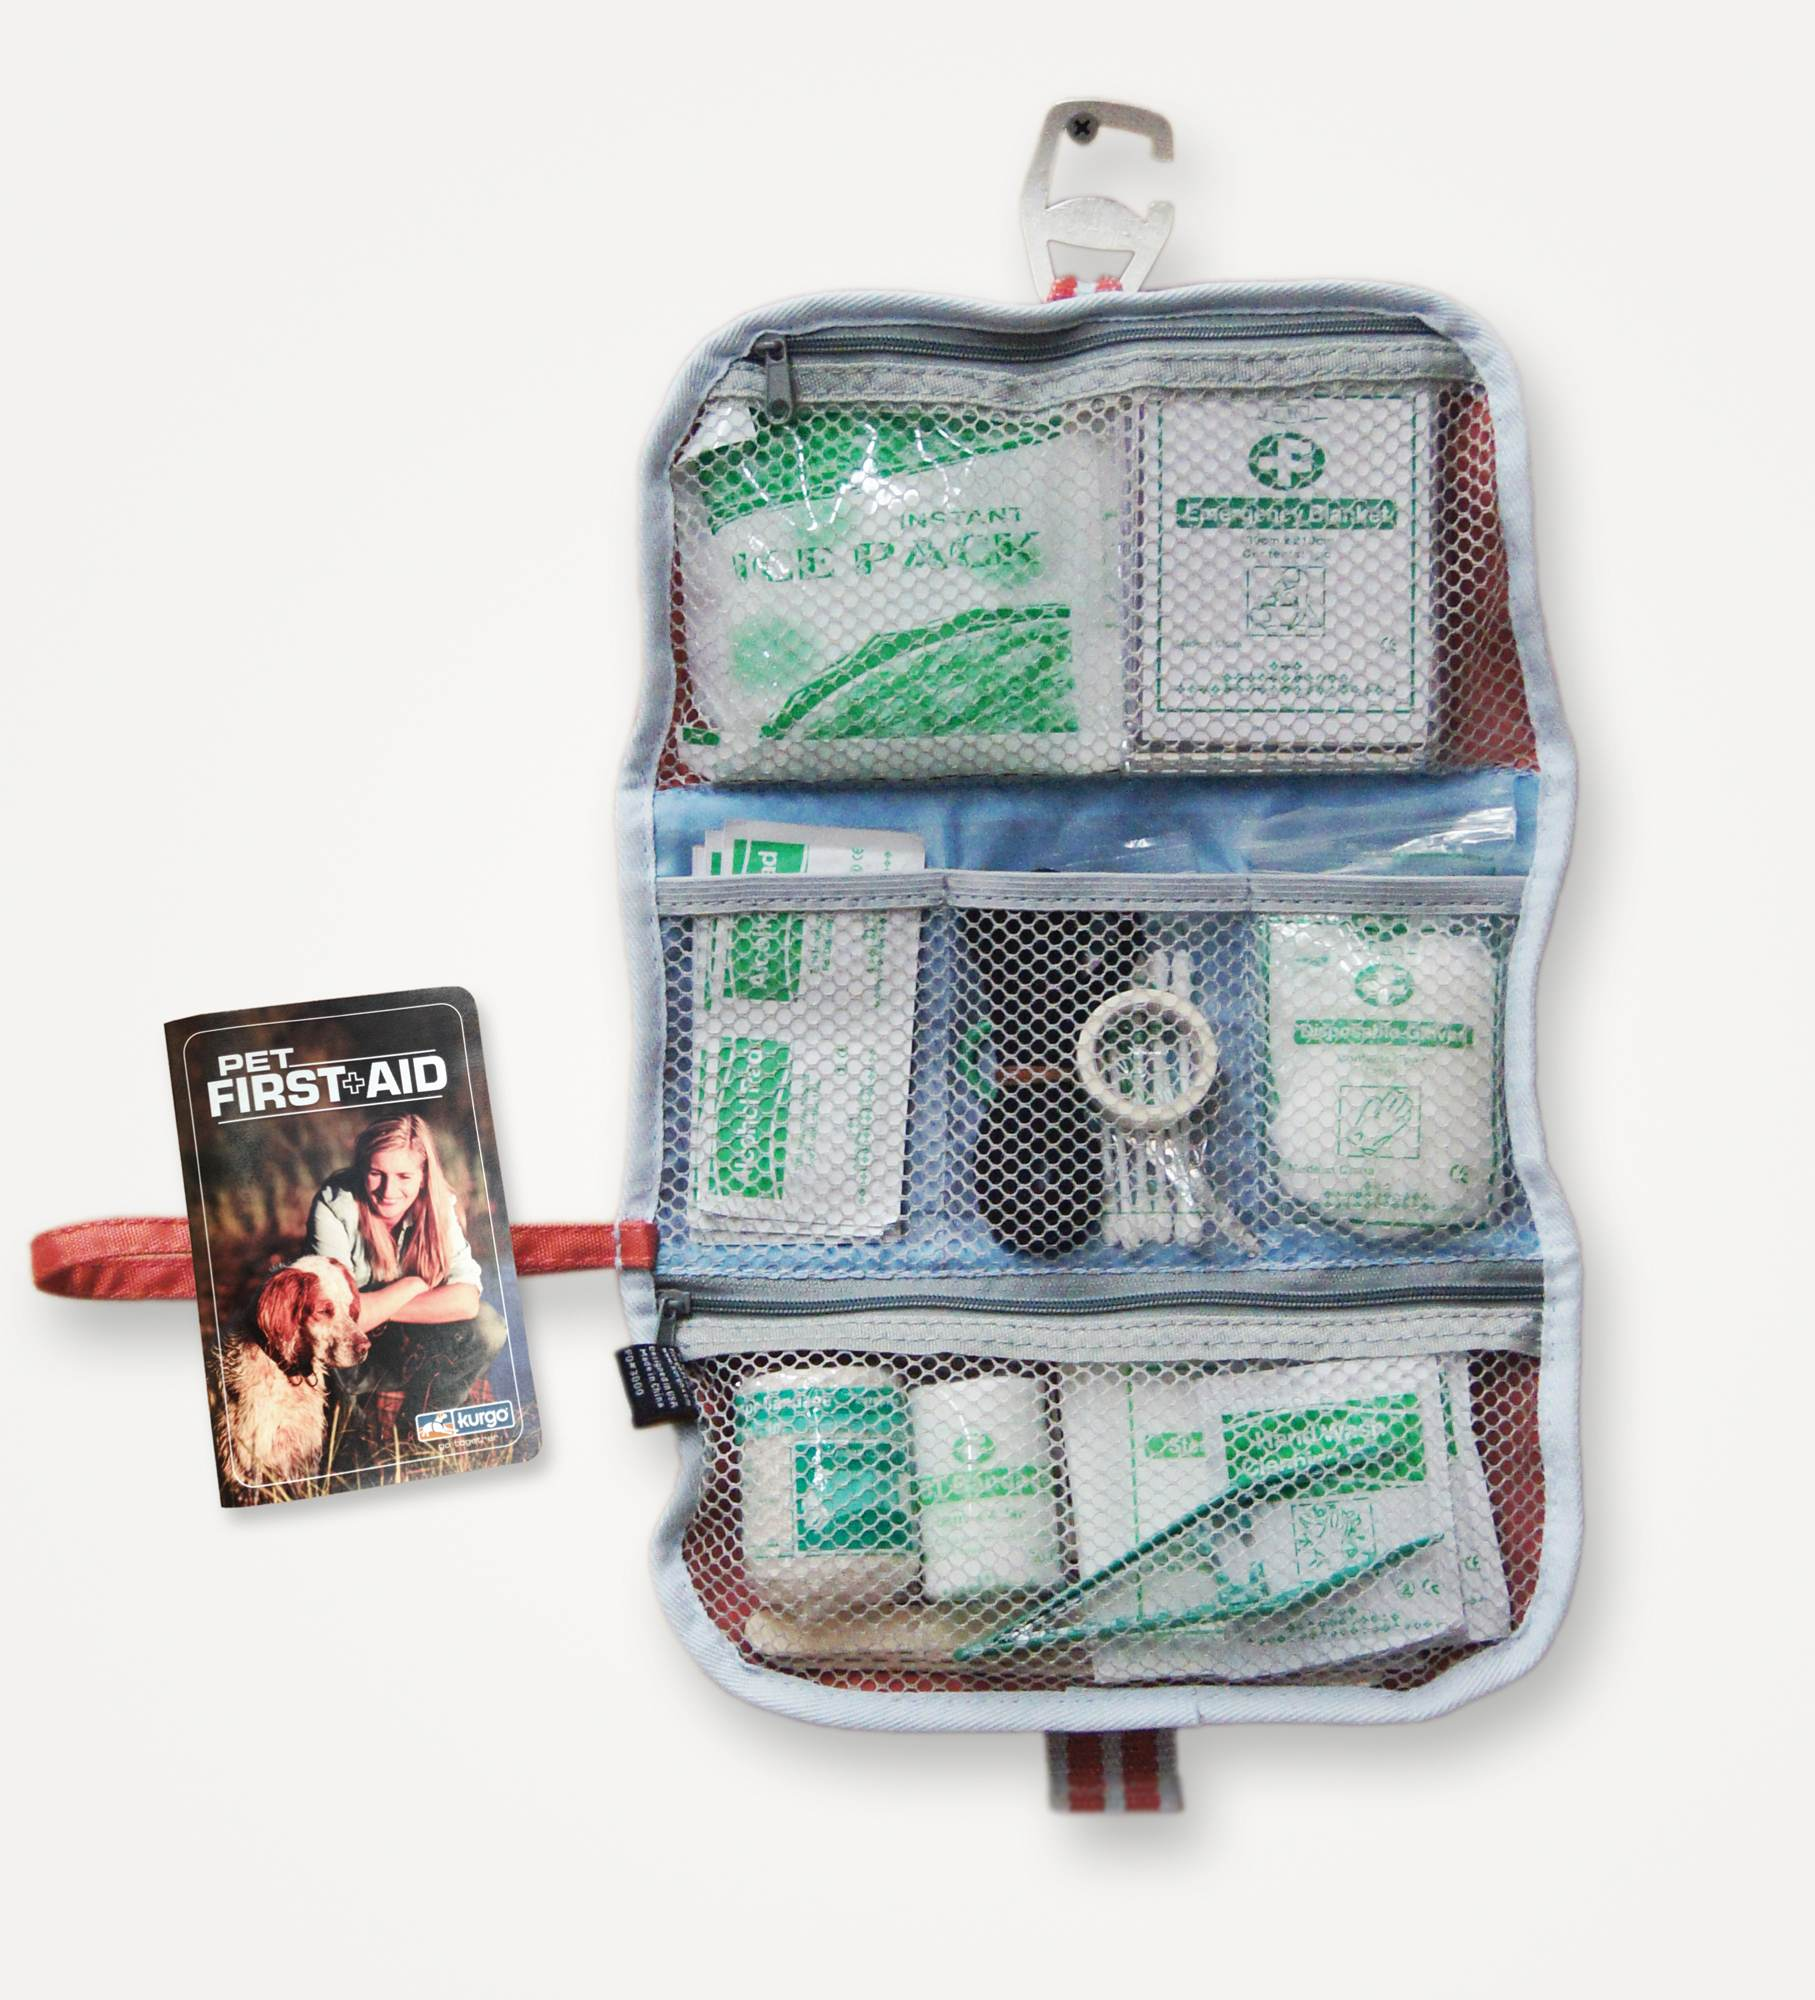 Animal First Aid Kit - Kurgo Pet First Aid Kit hangs from hook for easy access